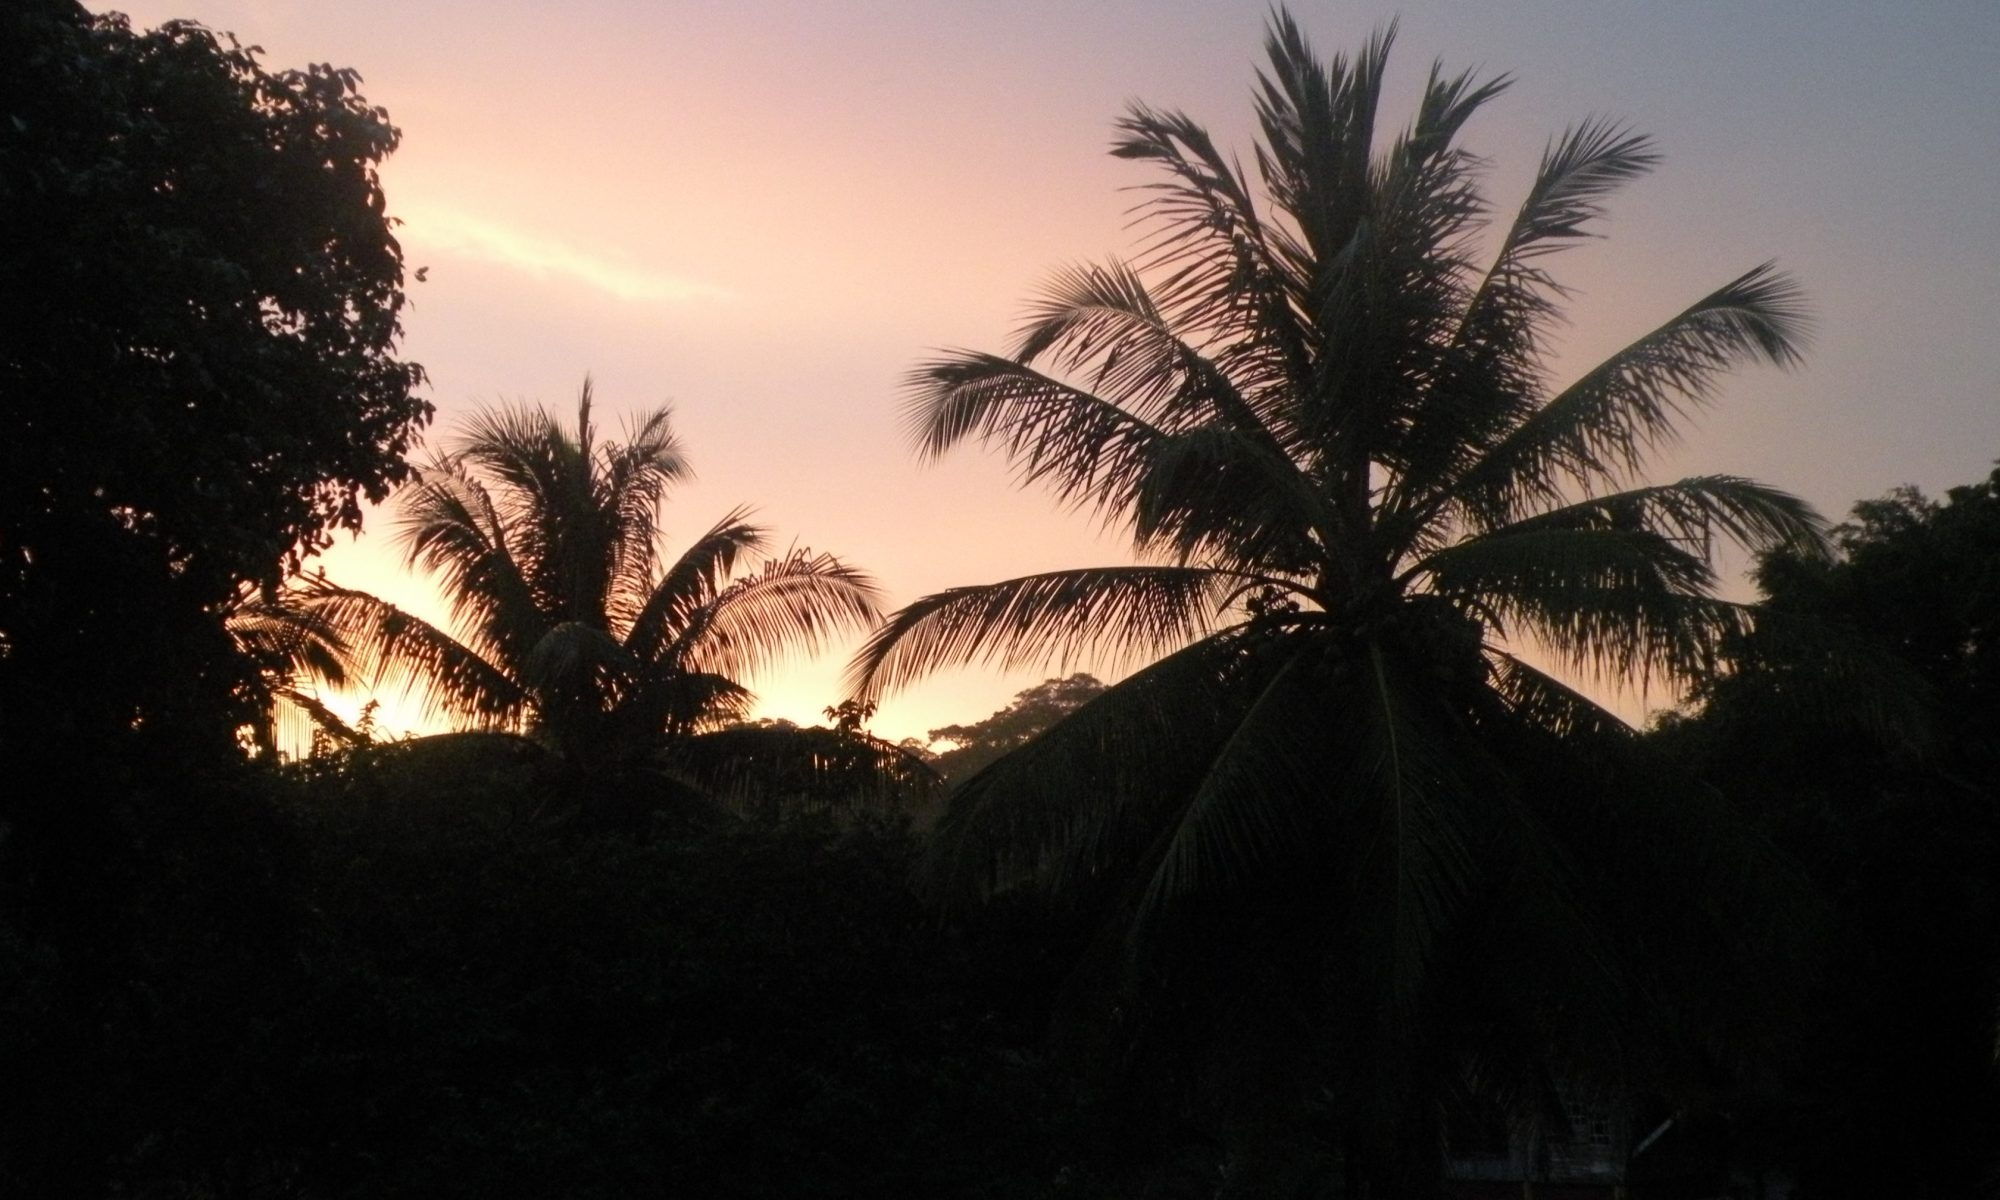 Beautiful sunsets at Paraiso del Cocodrilo